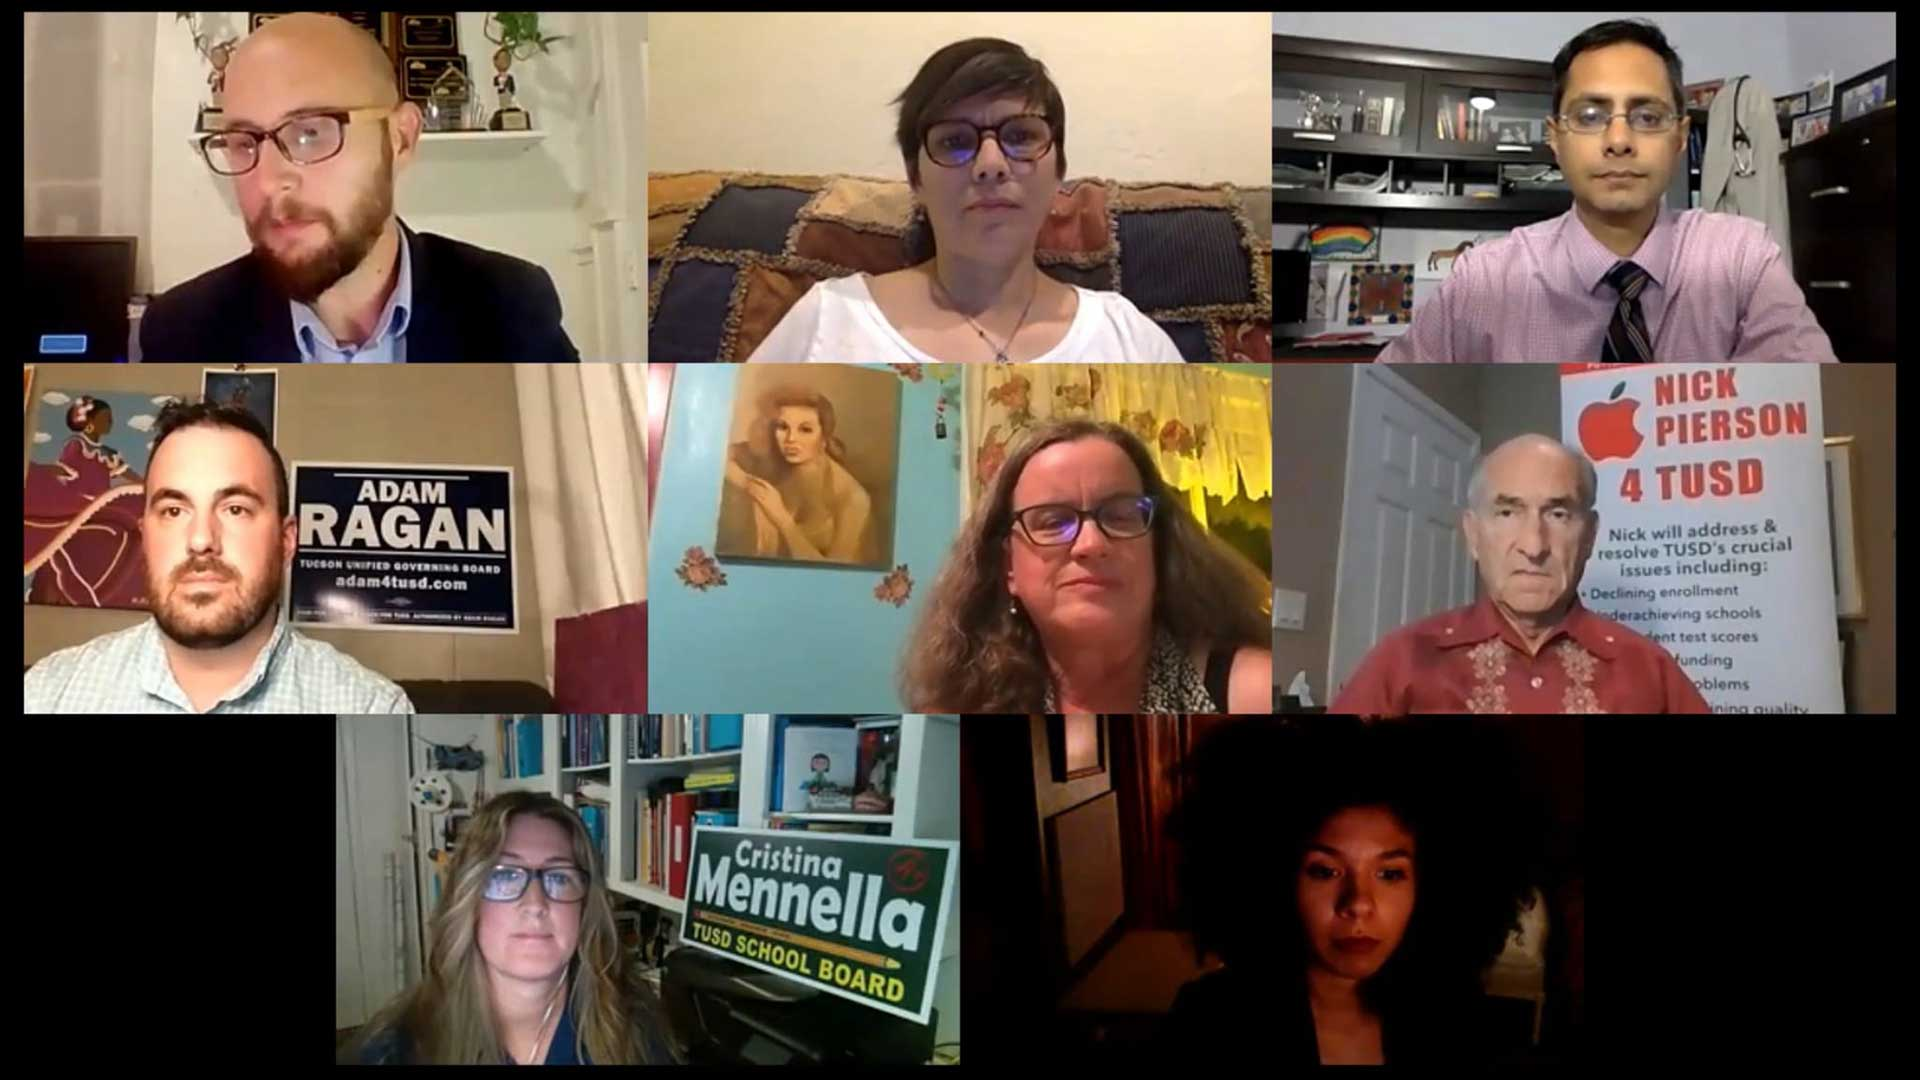 The seven candidates campaigning for a spot on the Tucson Unified School District Governing Board gathered on Zoom to discuss education issues on Oct. 8, 2020. Journalist Hank Stephenson moderated the forum.